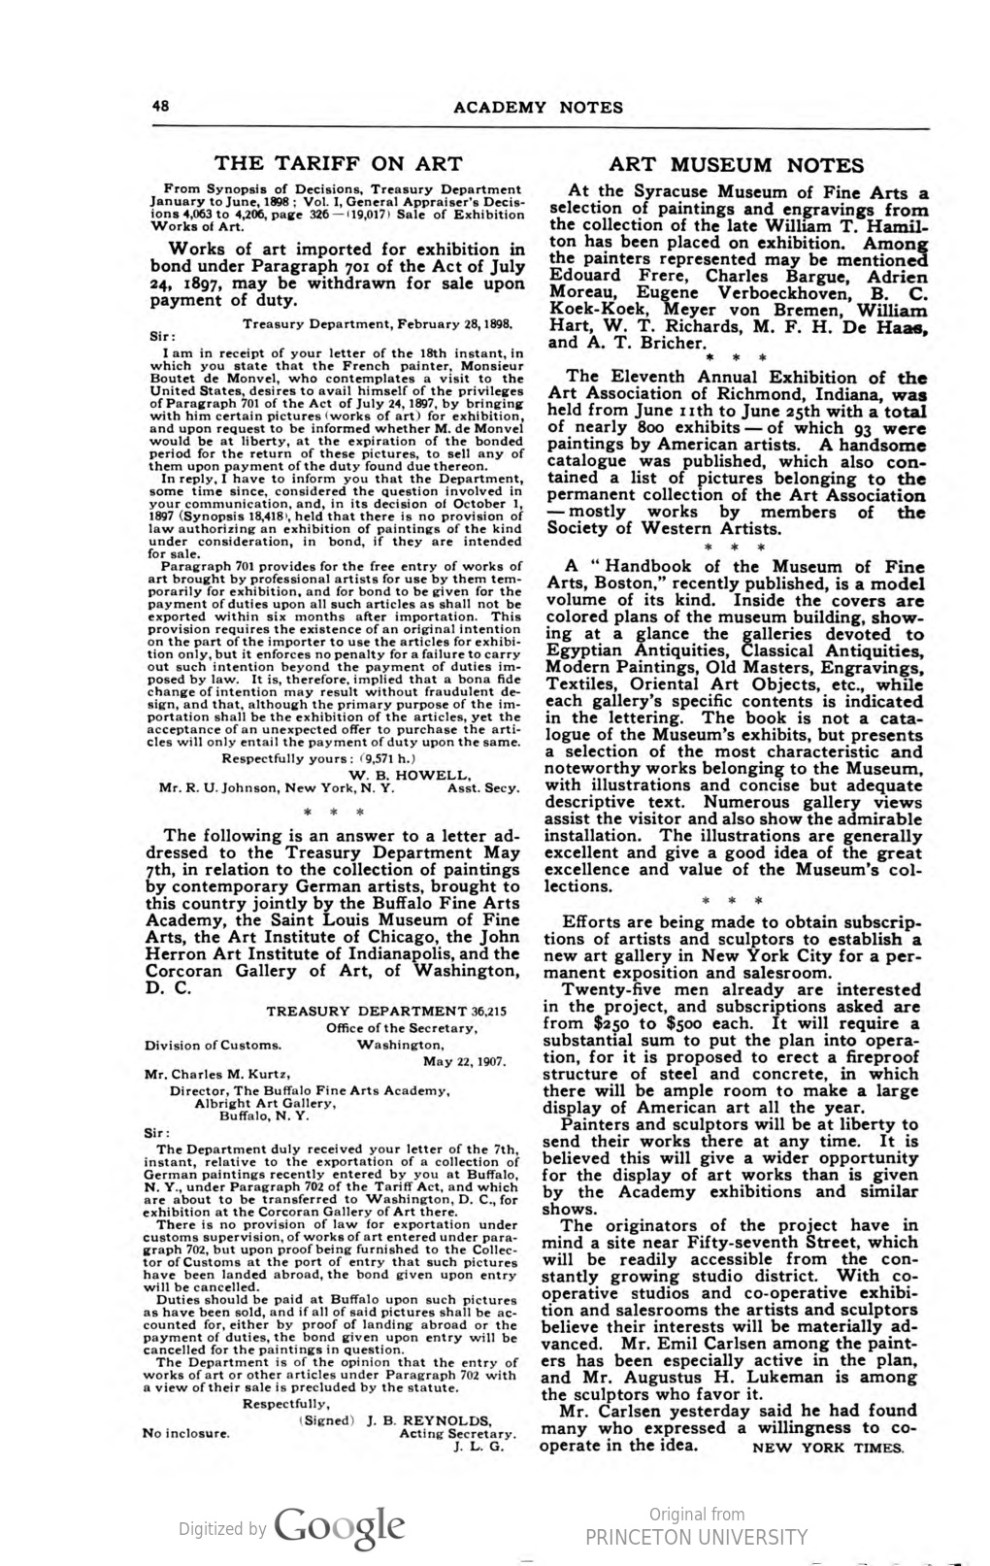 """Academy Notes, Buffalo Fine Arts Academy, Albright Art Gallery, Buffalo, NY, """"Art Museum Notes"""", August, 1907, Volume 3, Number 3, page 48, not illustrated"""